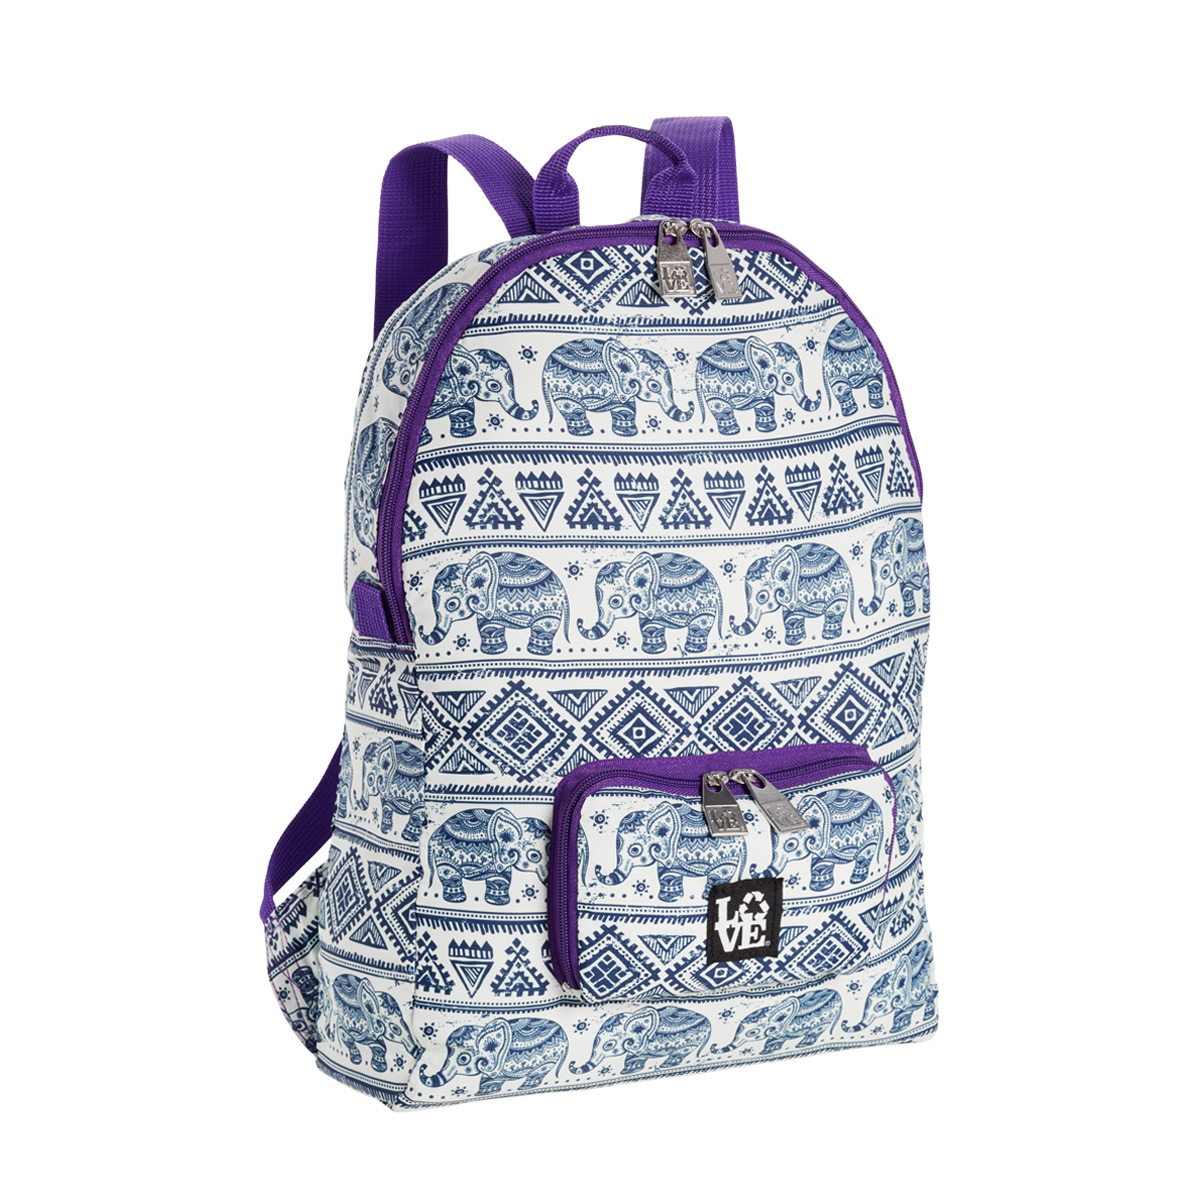 Elephant in the Room Stash It Backpack